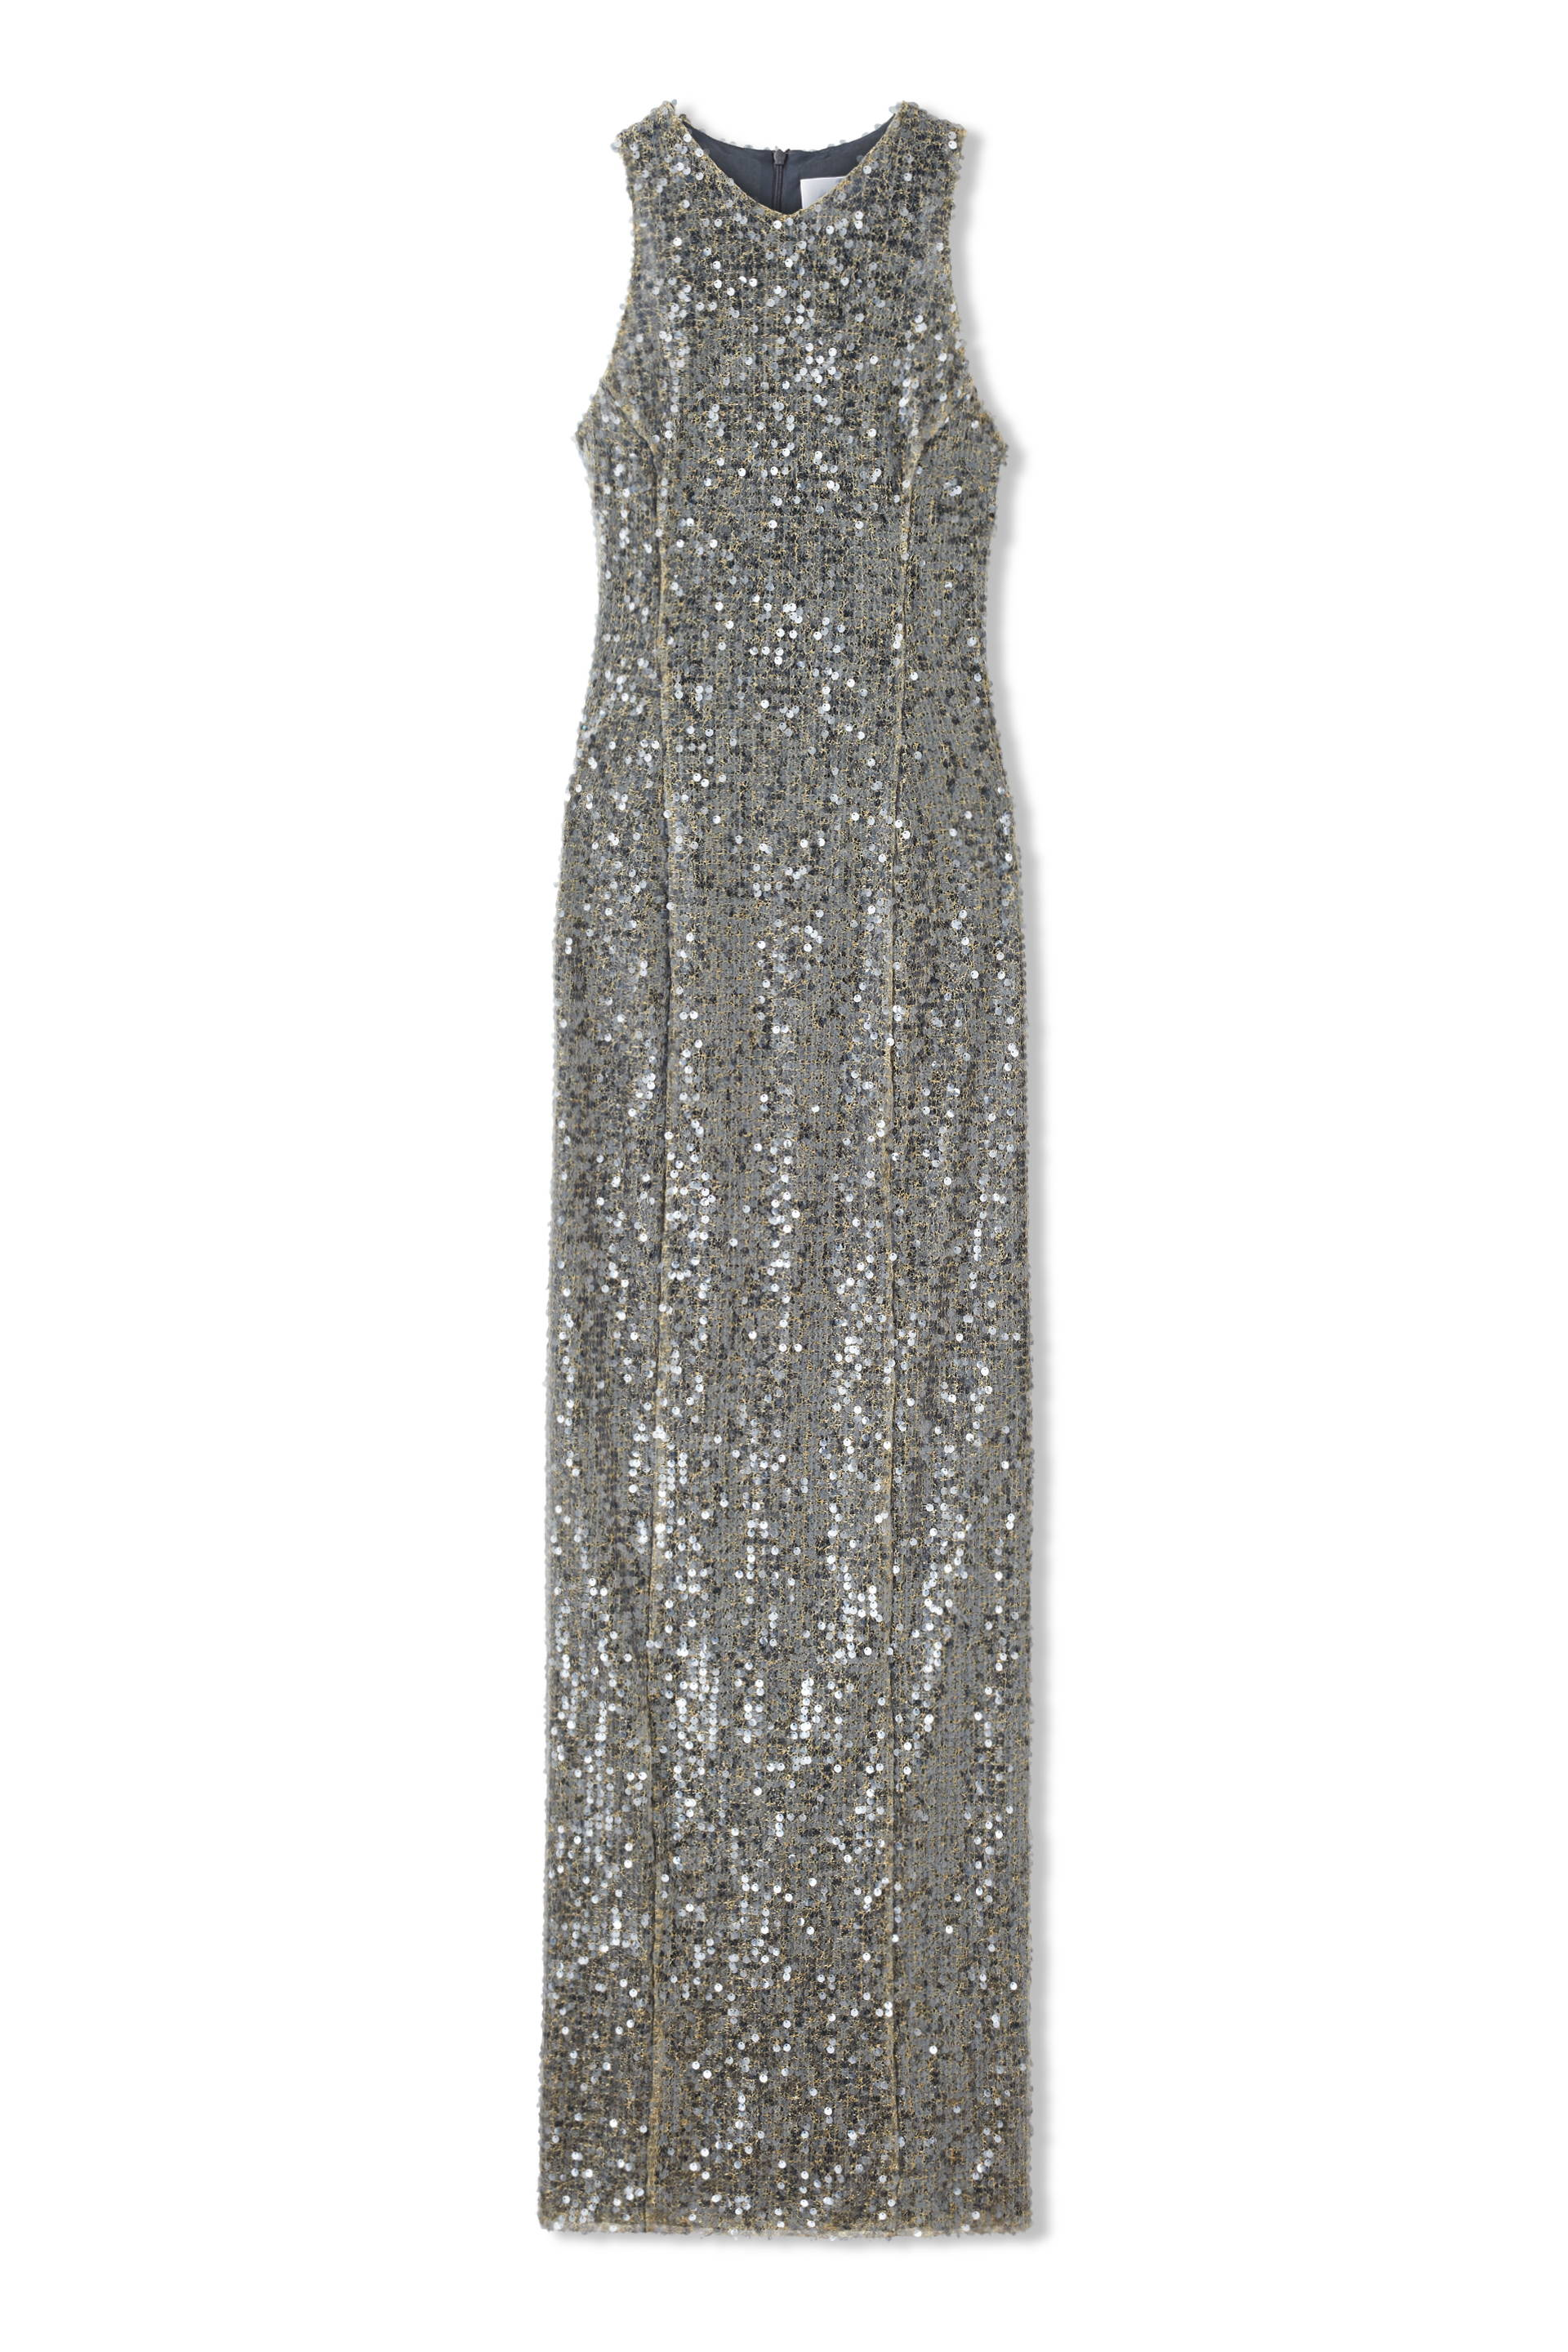 Galvan London Metallic Sequin Silver Column Dress